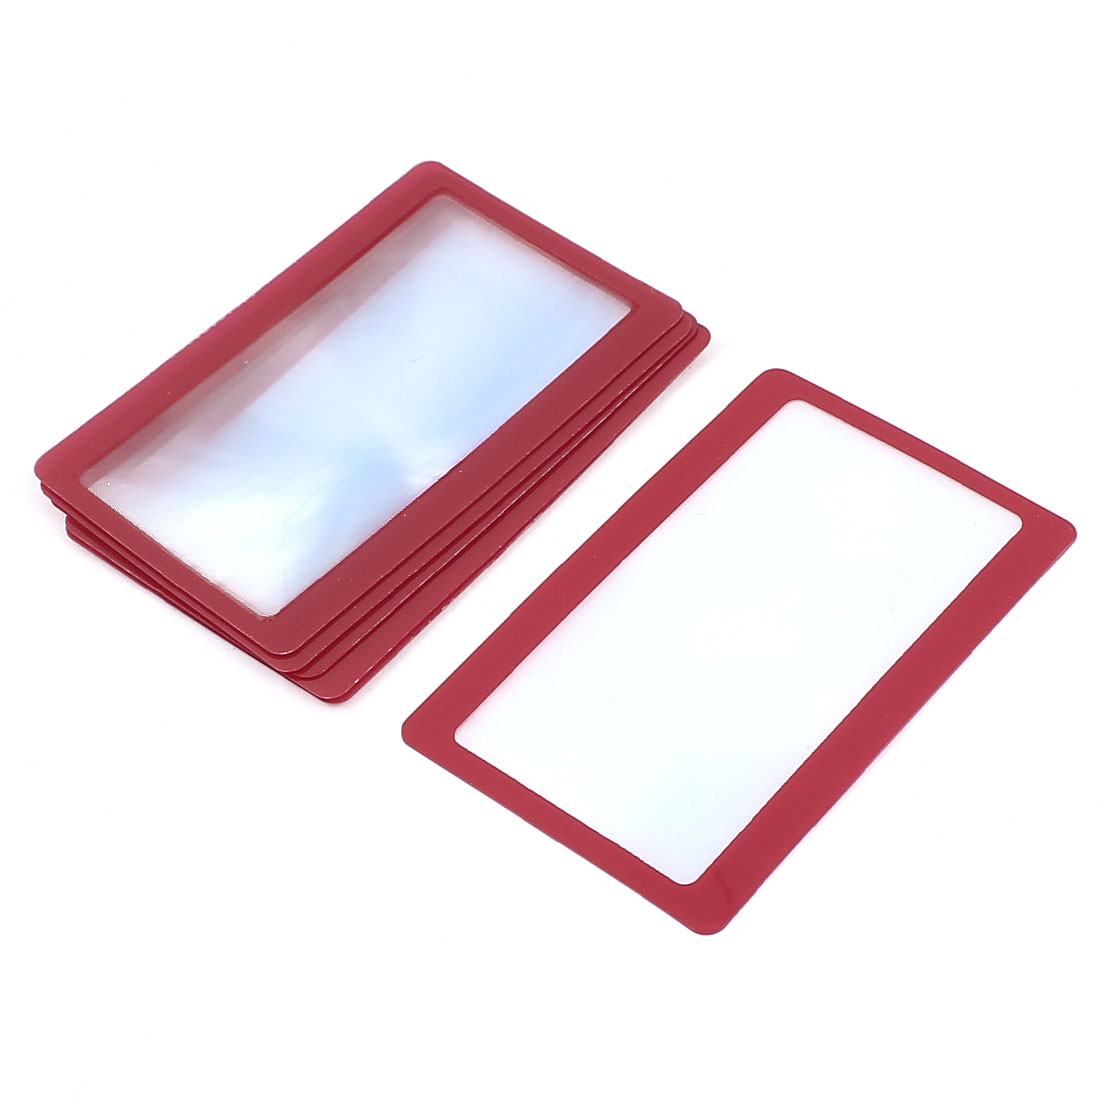 6 Pcs Red Frame Credit Card Reading Magnifier 3x Magnifying Wallet Loupe Lens